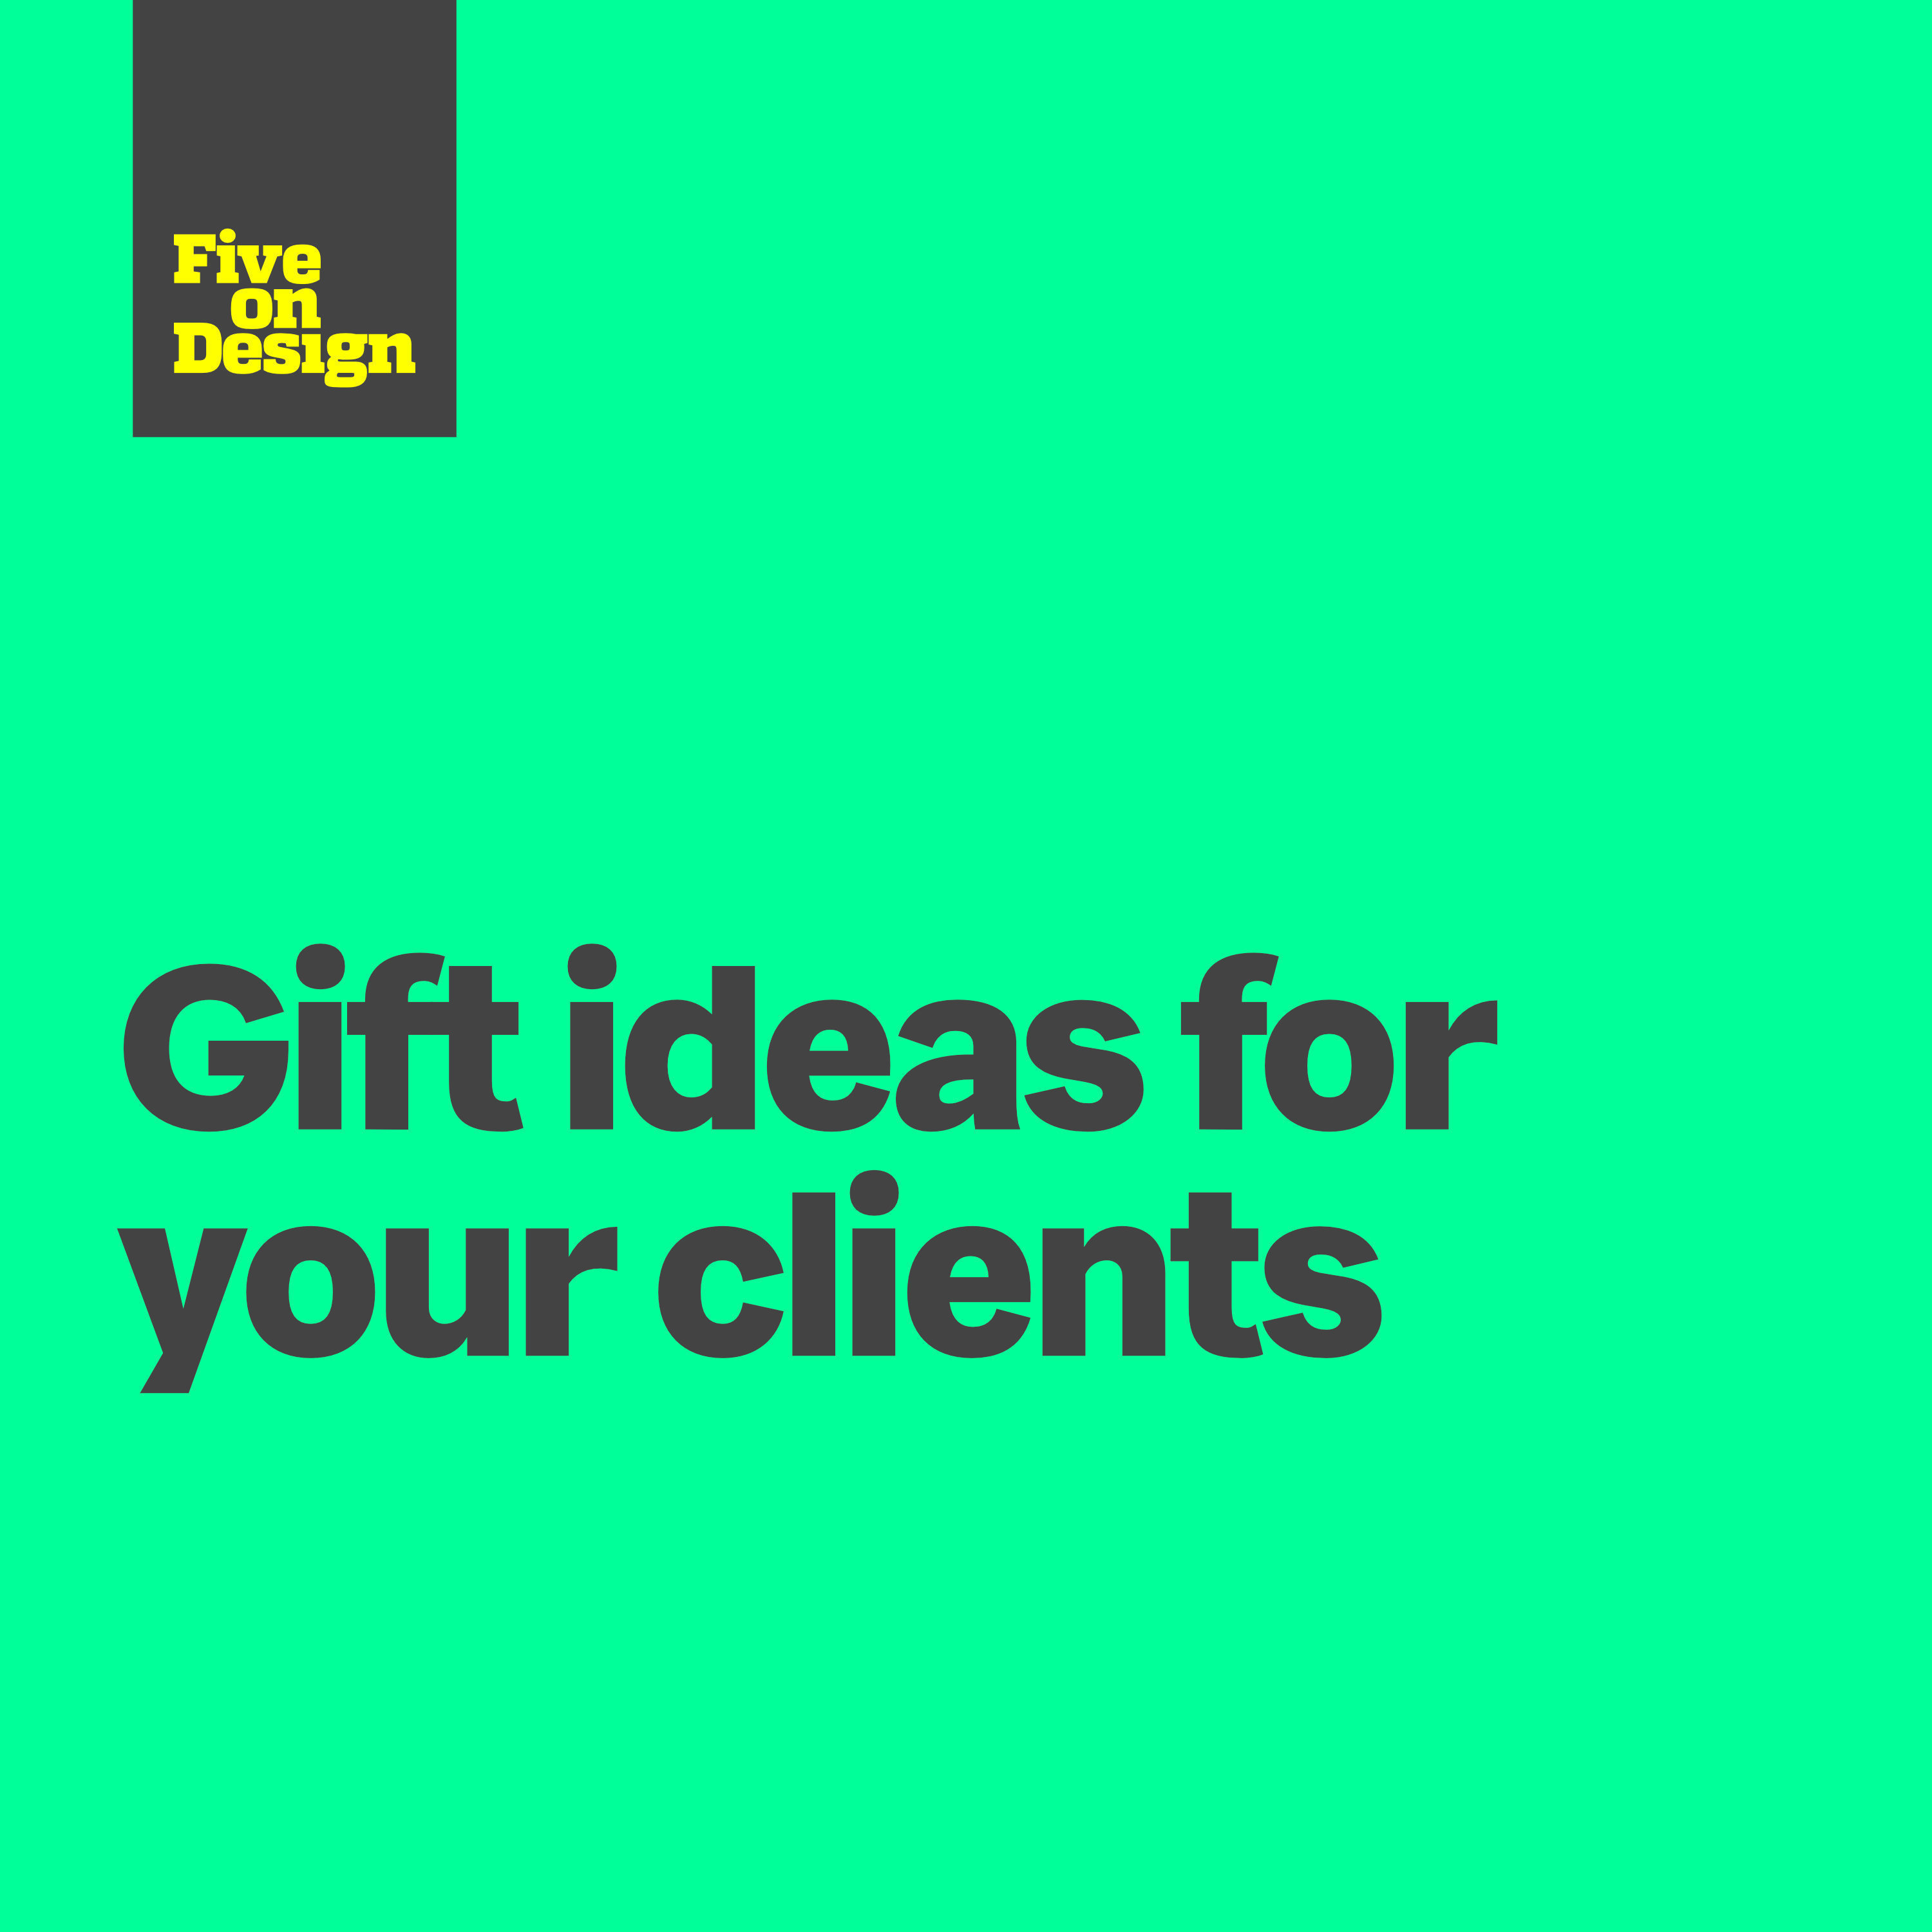 Gift ideas for your clients